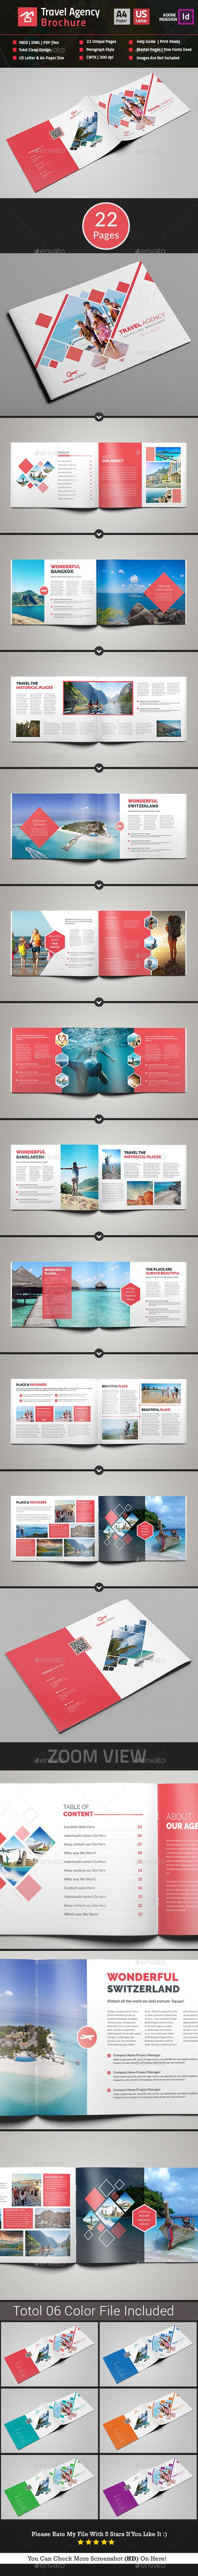 #Travel #Agency #Brochure #Catalog - #Corporate #Brochures Download here: https://graphicriver.net/item/travel-agency-brochure-catalog/16888657?ref=alena994